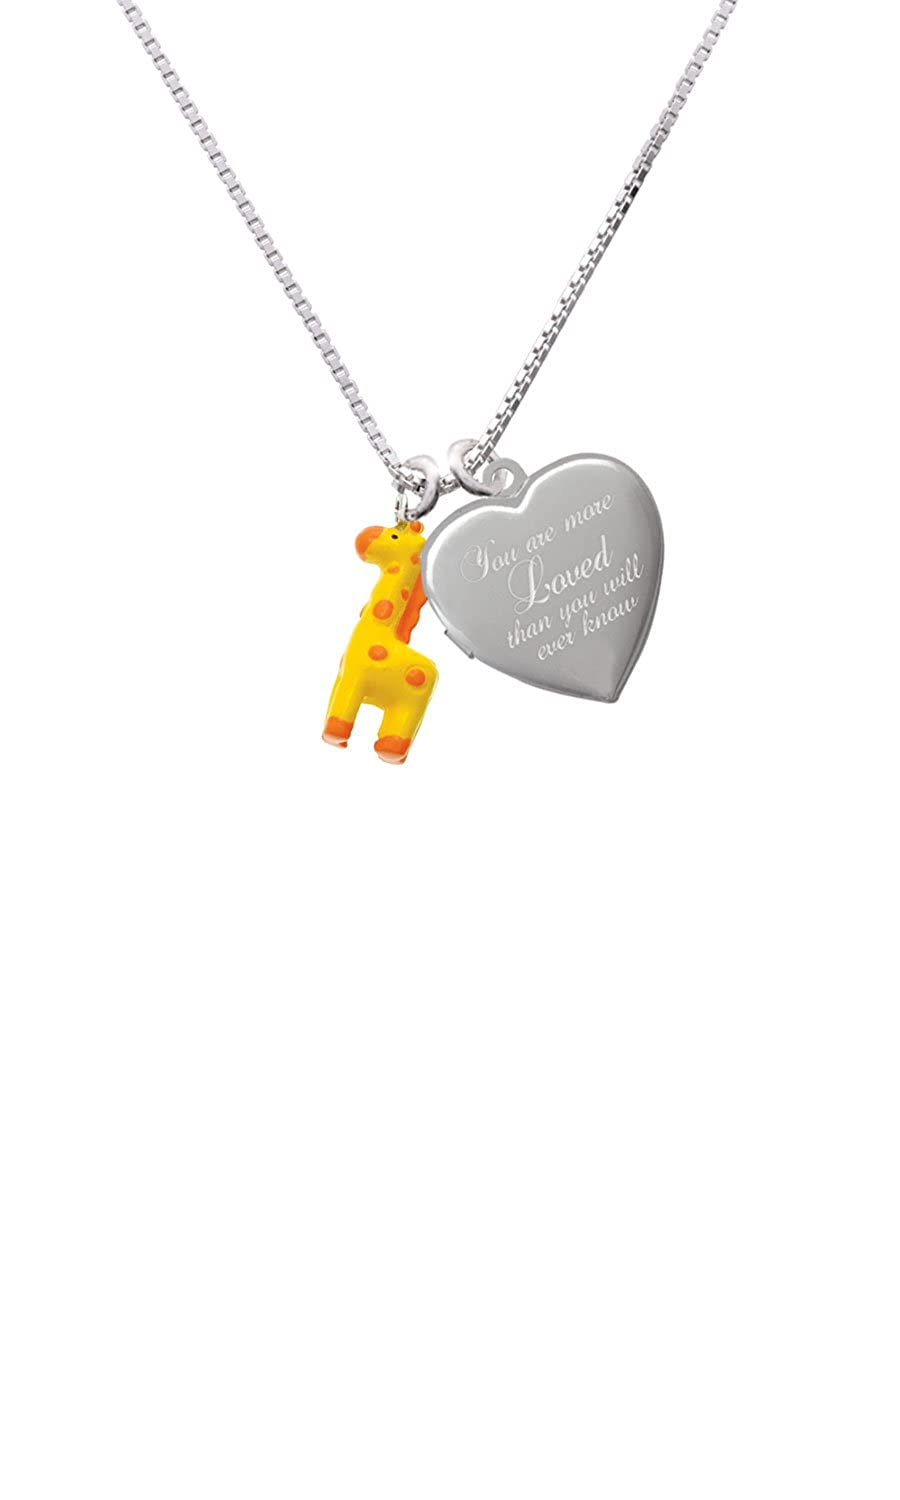 Resin Yellow Geronimo the Giraffe Custom Engraved You are more Loved Heart Locket Necklace